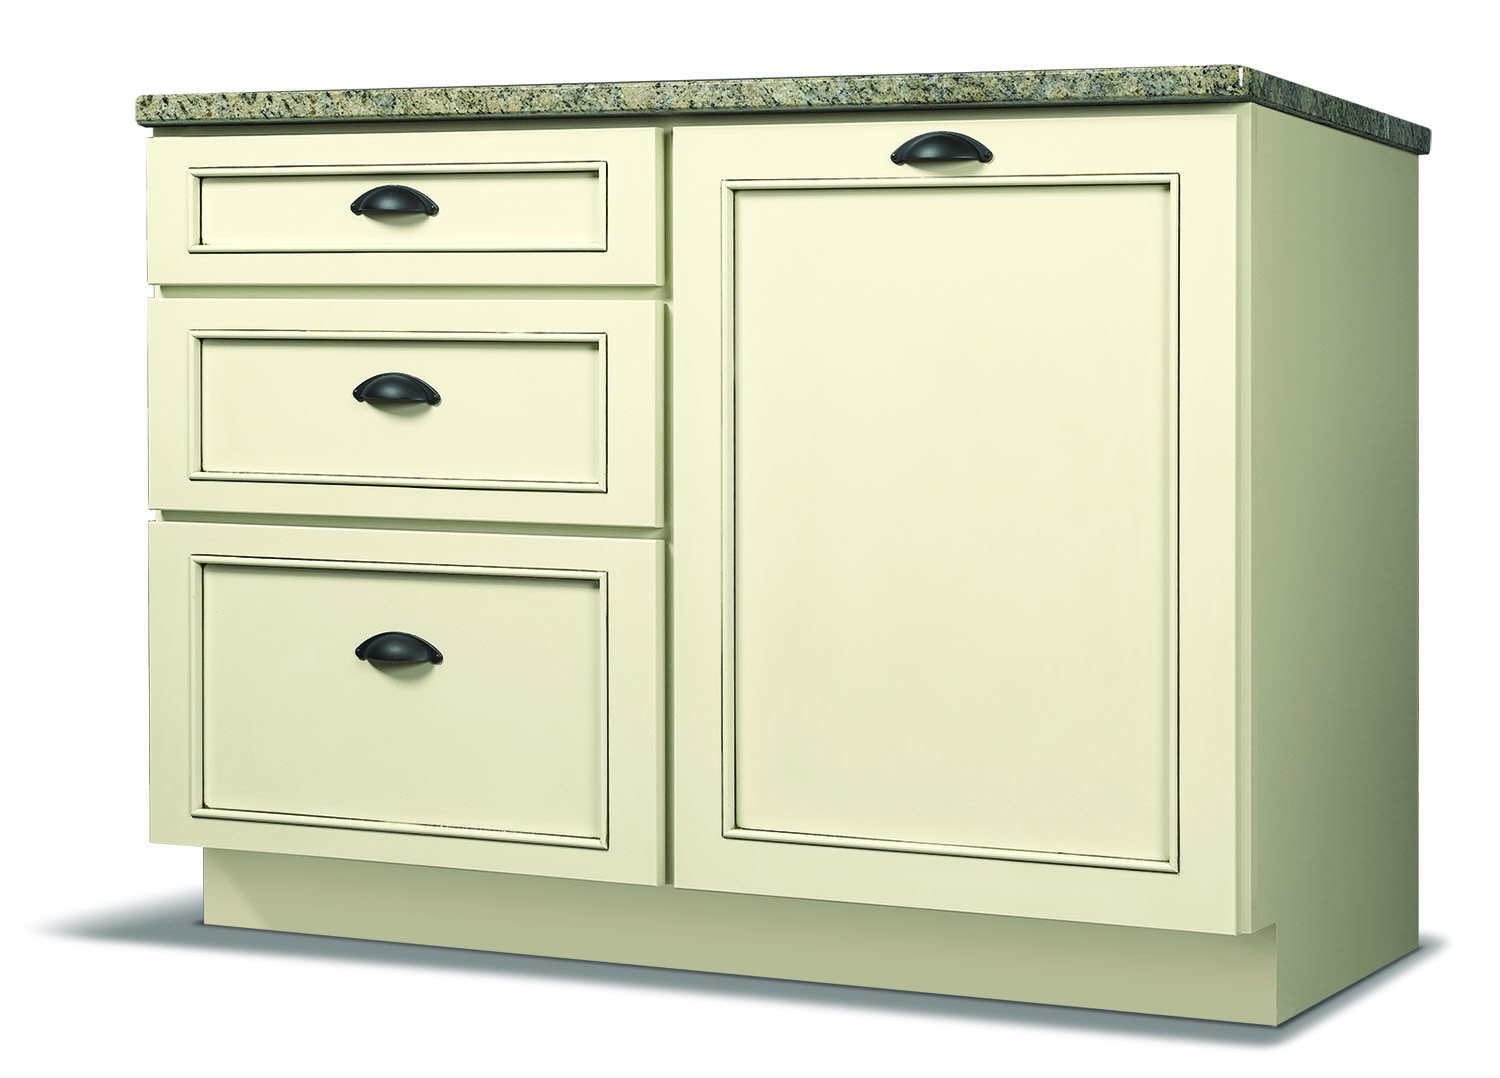 We've Expanded our Cabinet Systems Offerings!